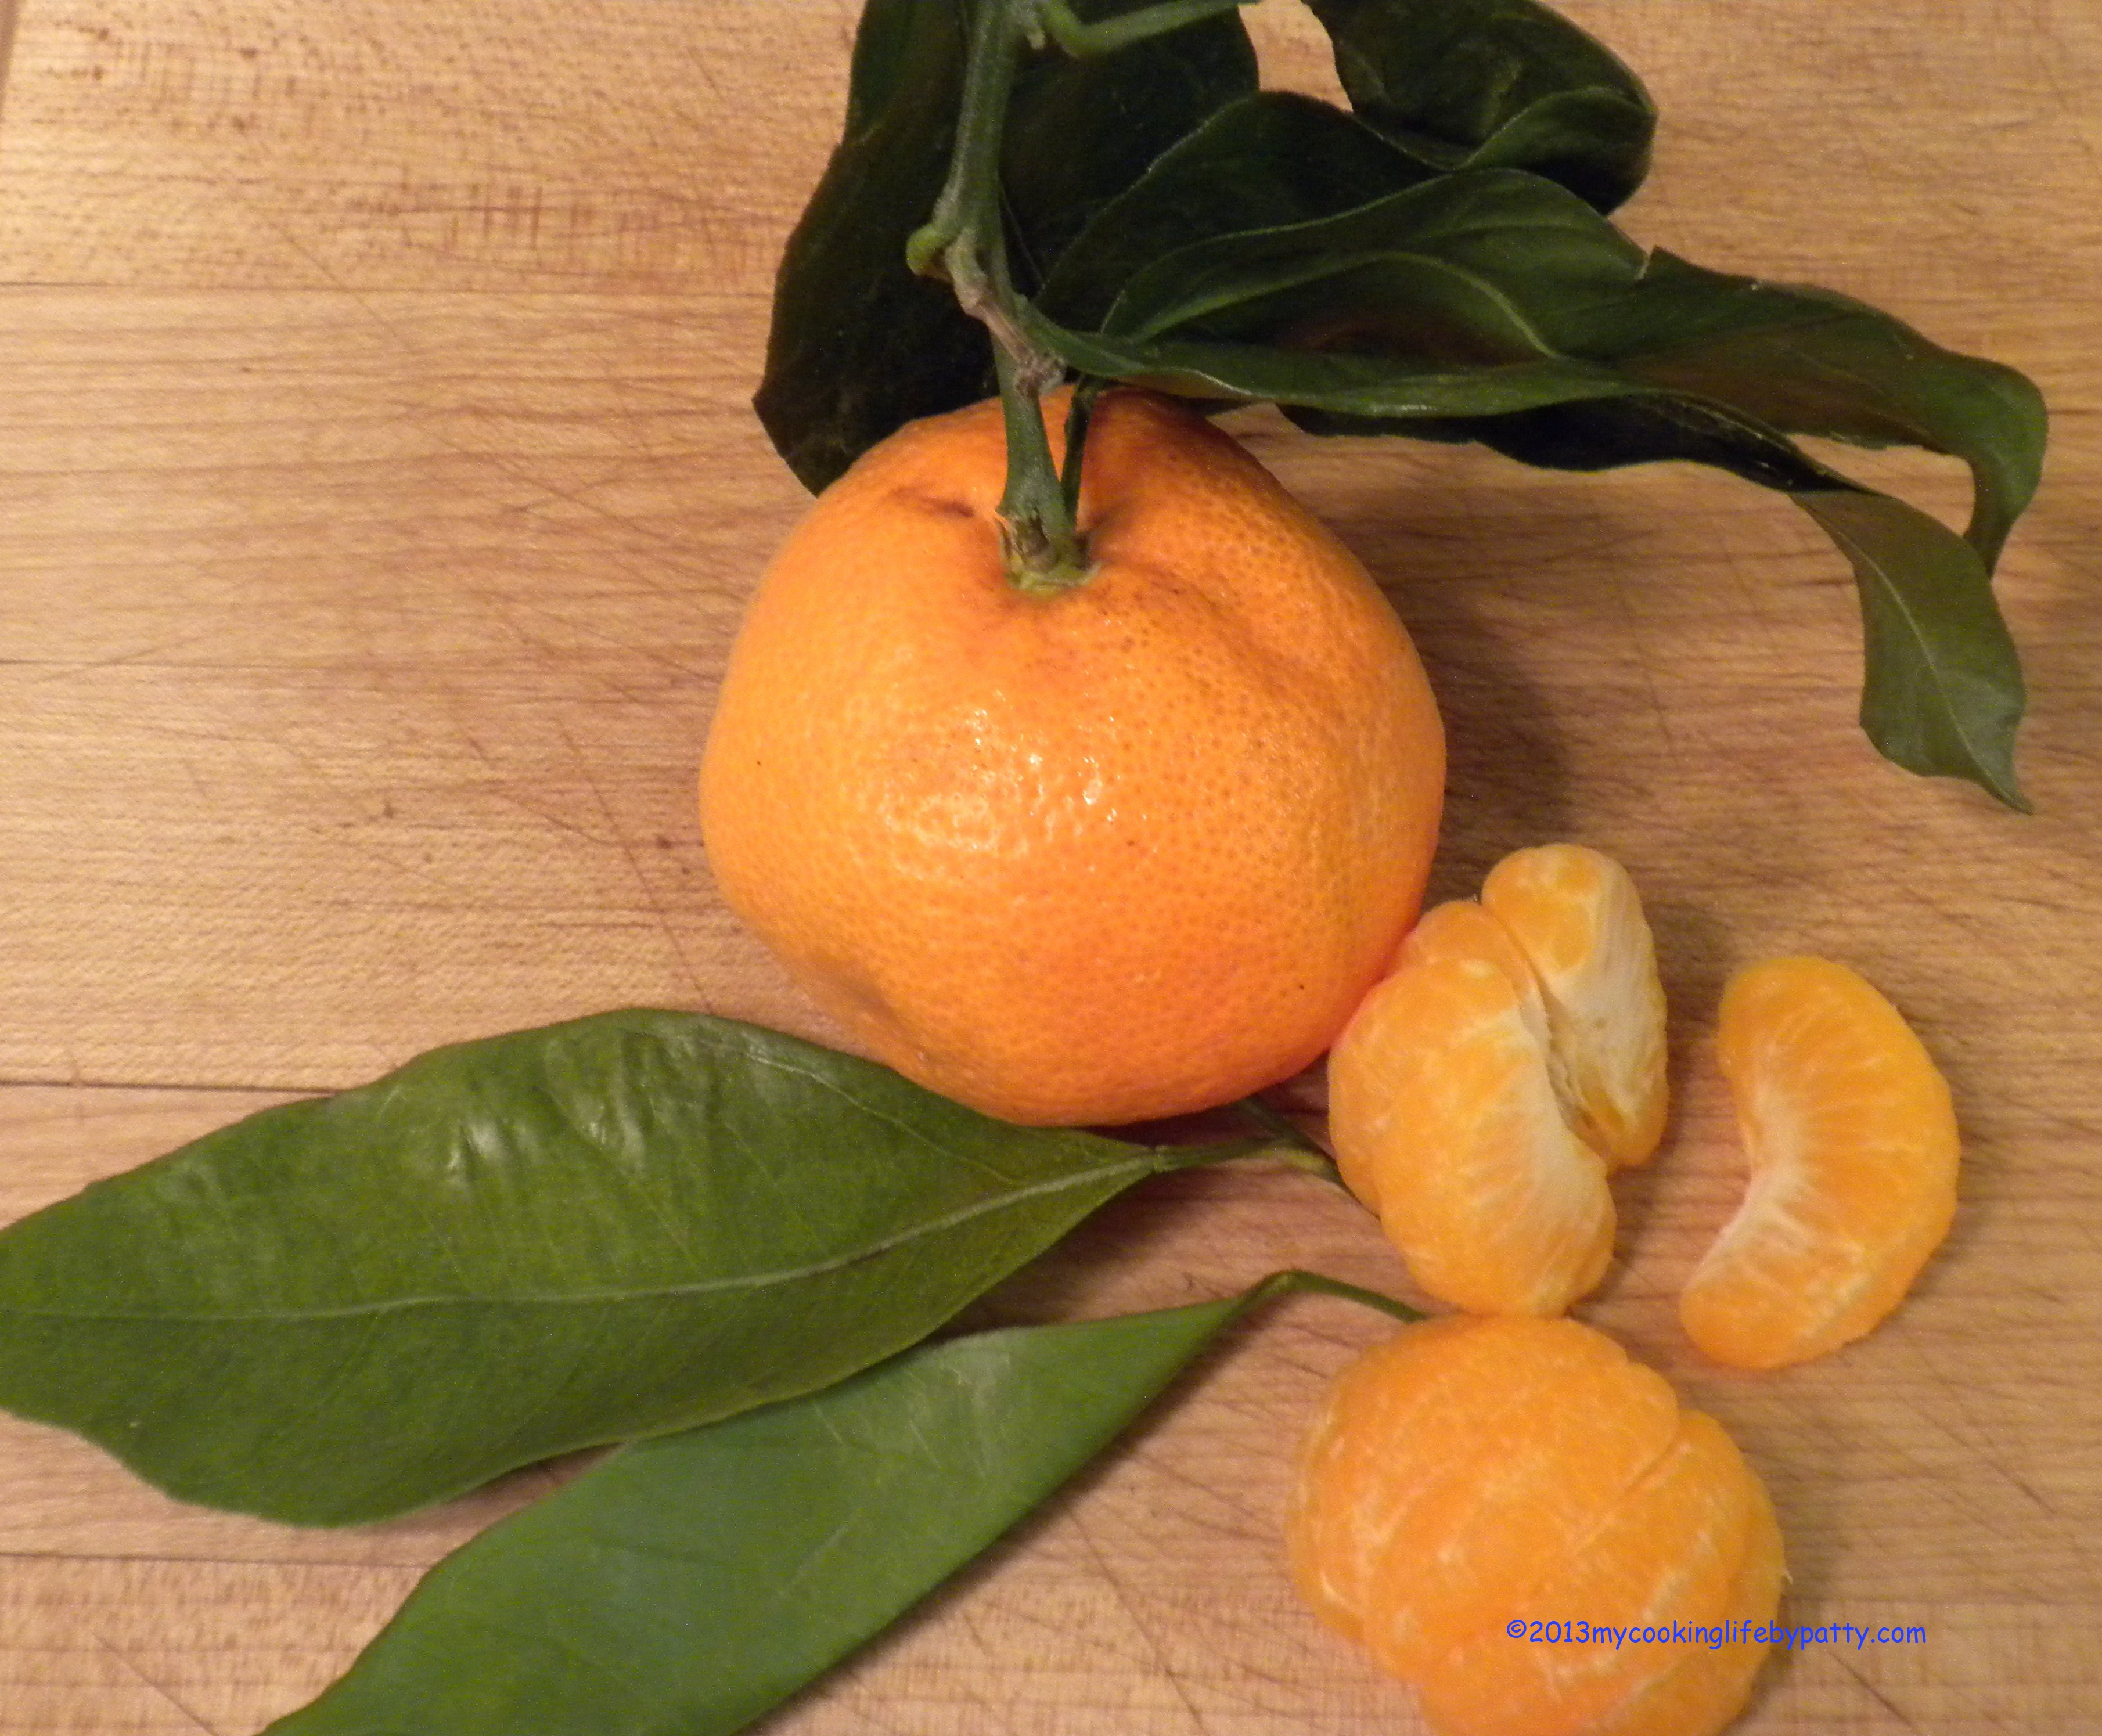 Now peel the tangerines, removing all the white pith. I used Satsuma tangerines which separate very easily from their skin.